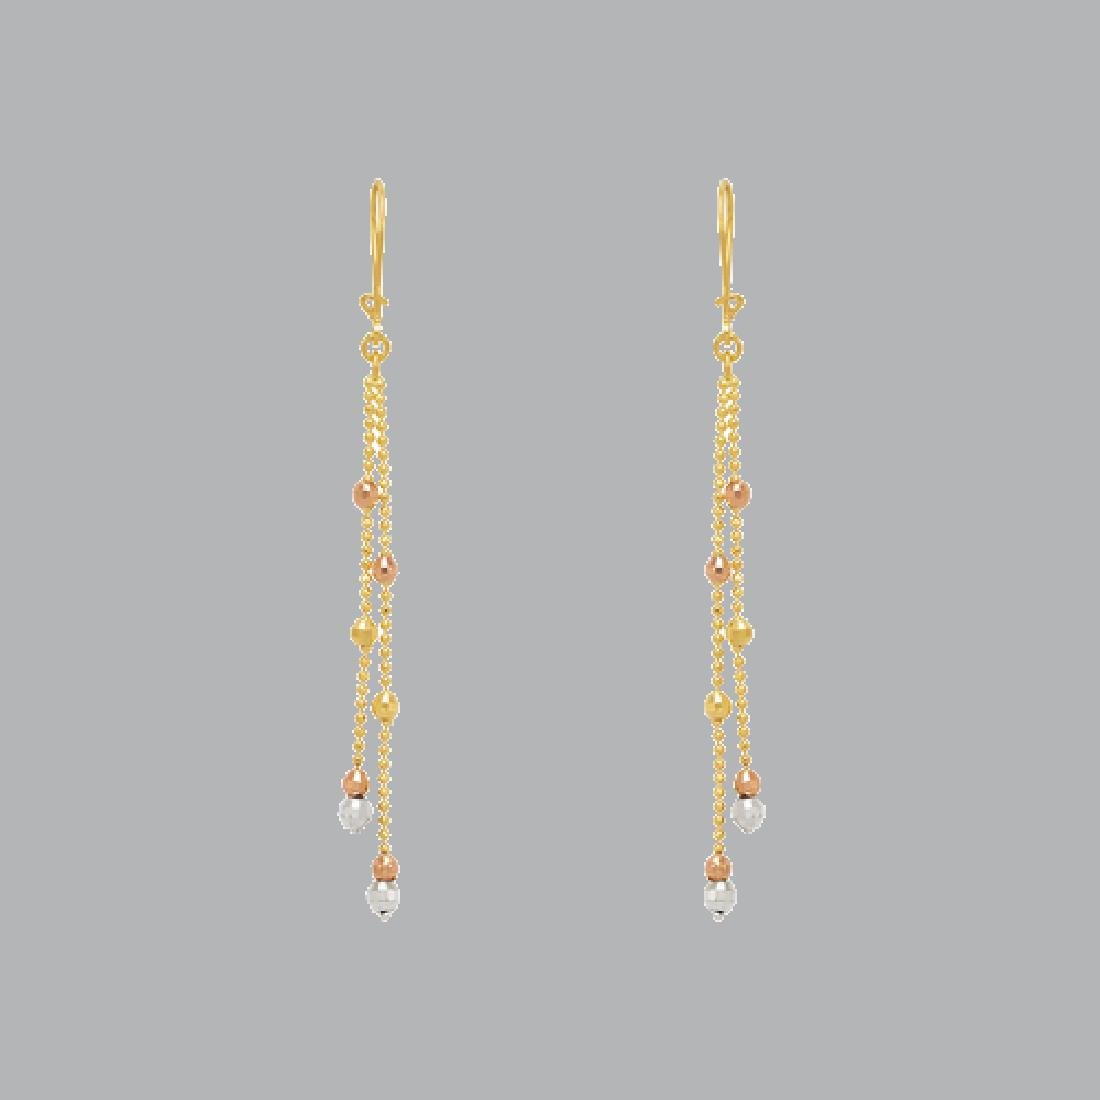 14K TRI COLOR GOLD DROP DANGLE MALAYSIAN EARRINGS